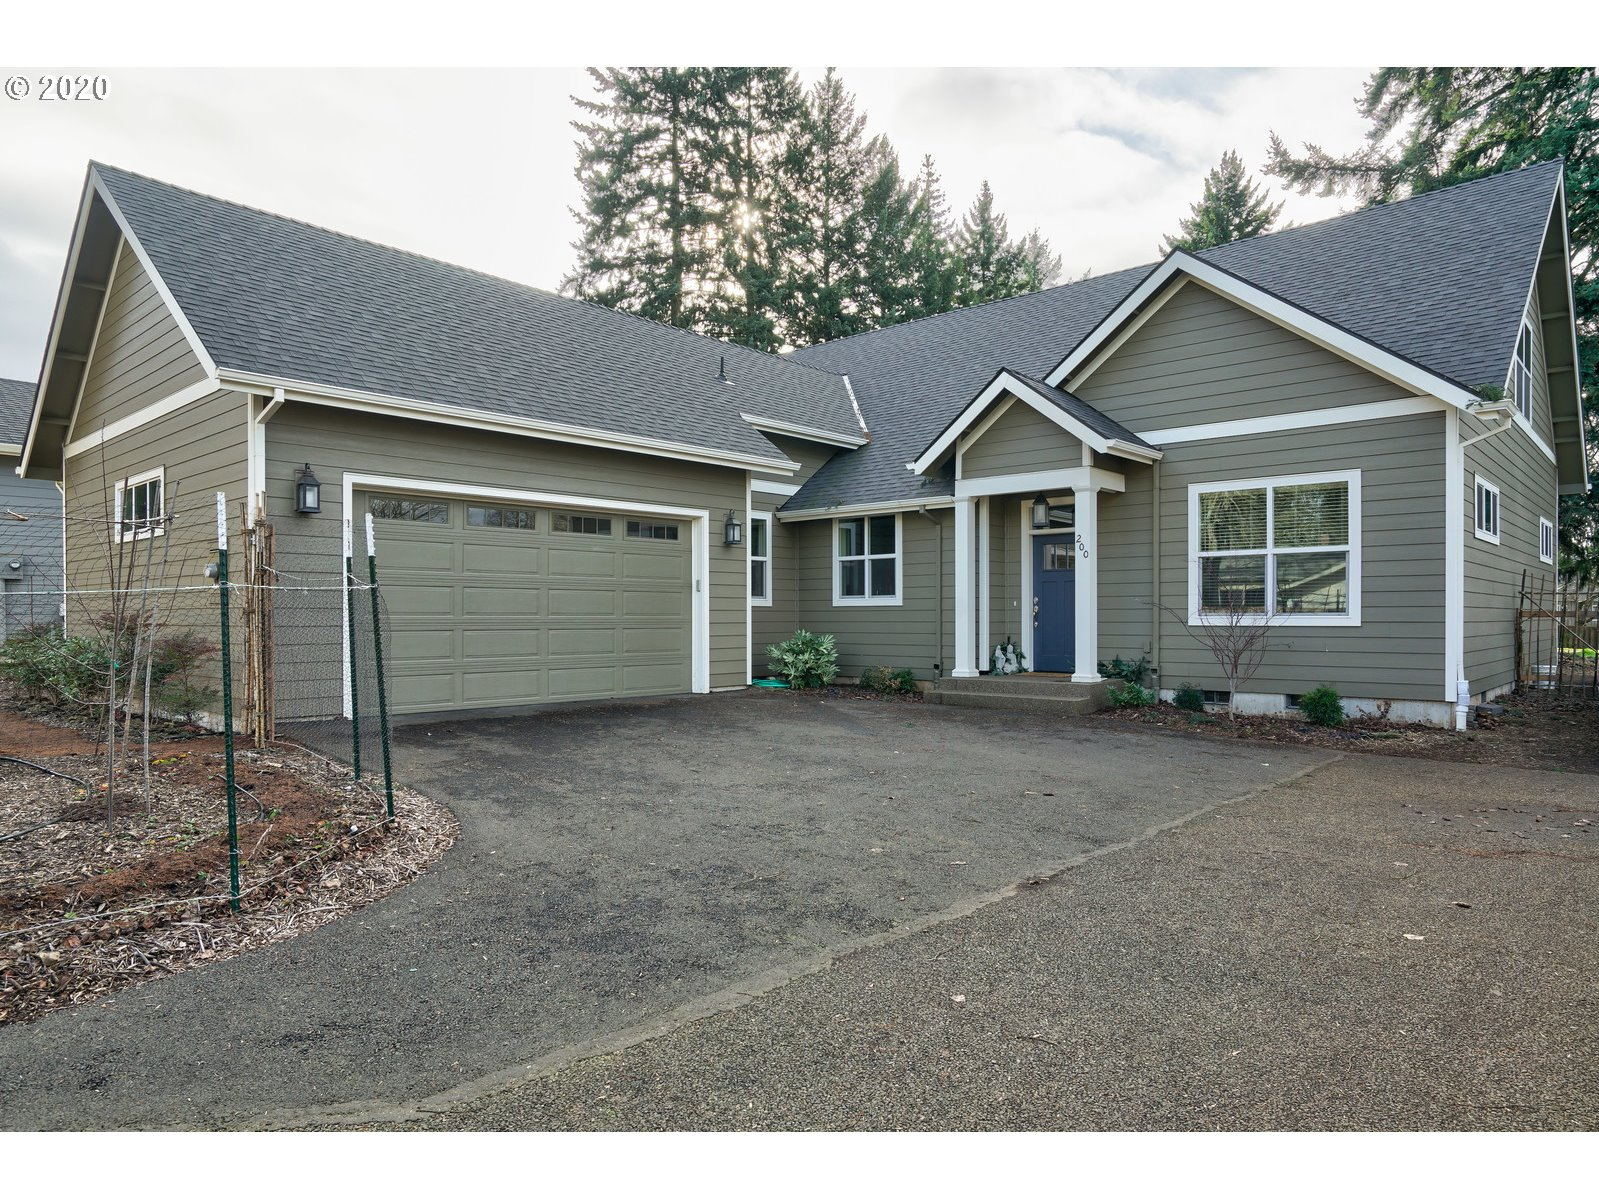 Residential | Harcourts NW Oregon Realty Group on mediterranean style home plans, floor plans, log home plans, 1 600 sf ranch plans, 3 car garage ranch plans, ranch decks, ranch mansions, luxury home plans, custom home plans, ranch horses, cabin plans, patio home plans, ranch blueprints, rustic home plans, new ranch style home plans, large family home plans, l-shaped range home plans, southern brick home plans, ranch remodel before and after, rambler style home plans,